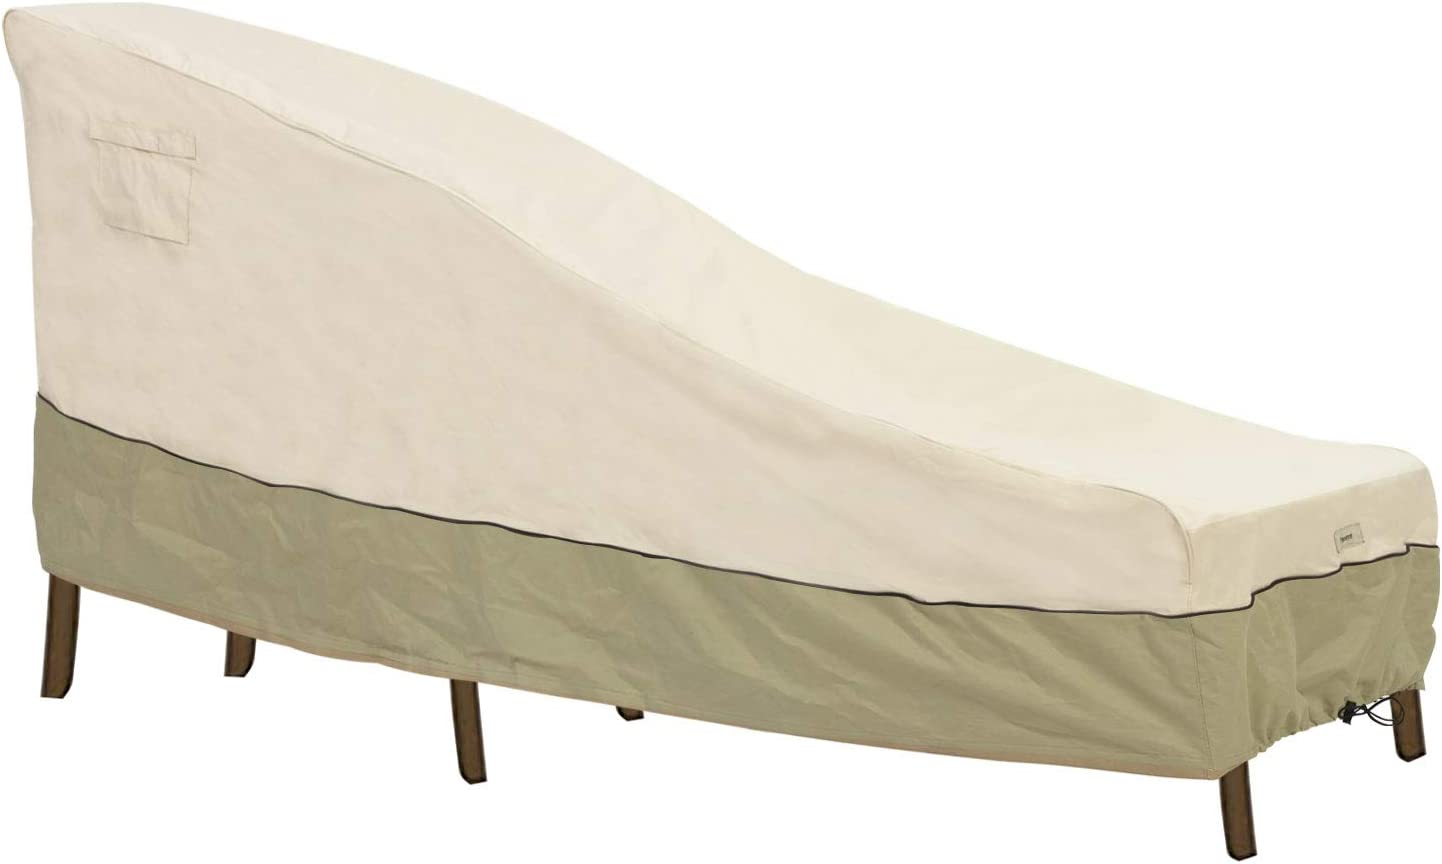 Bestalent Outdoor Furniture Cover Patio Chaise Lounge Cover,80-Inch